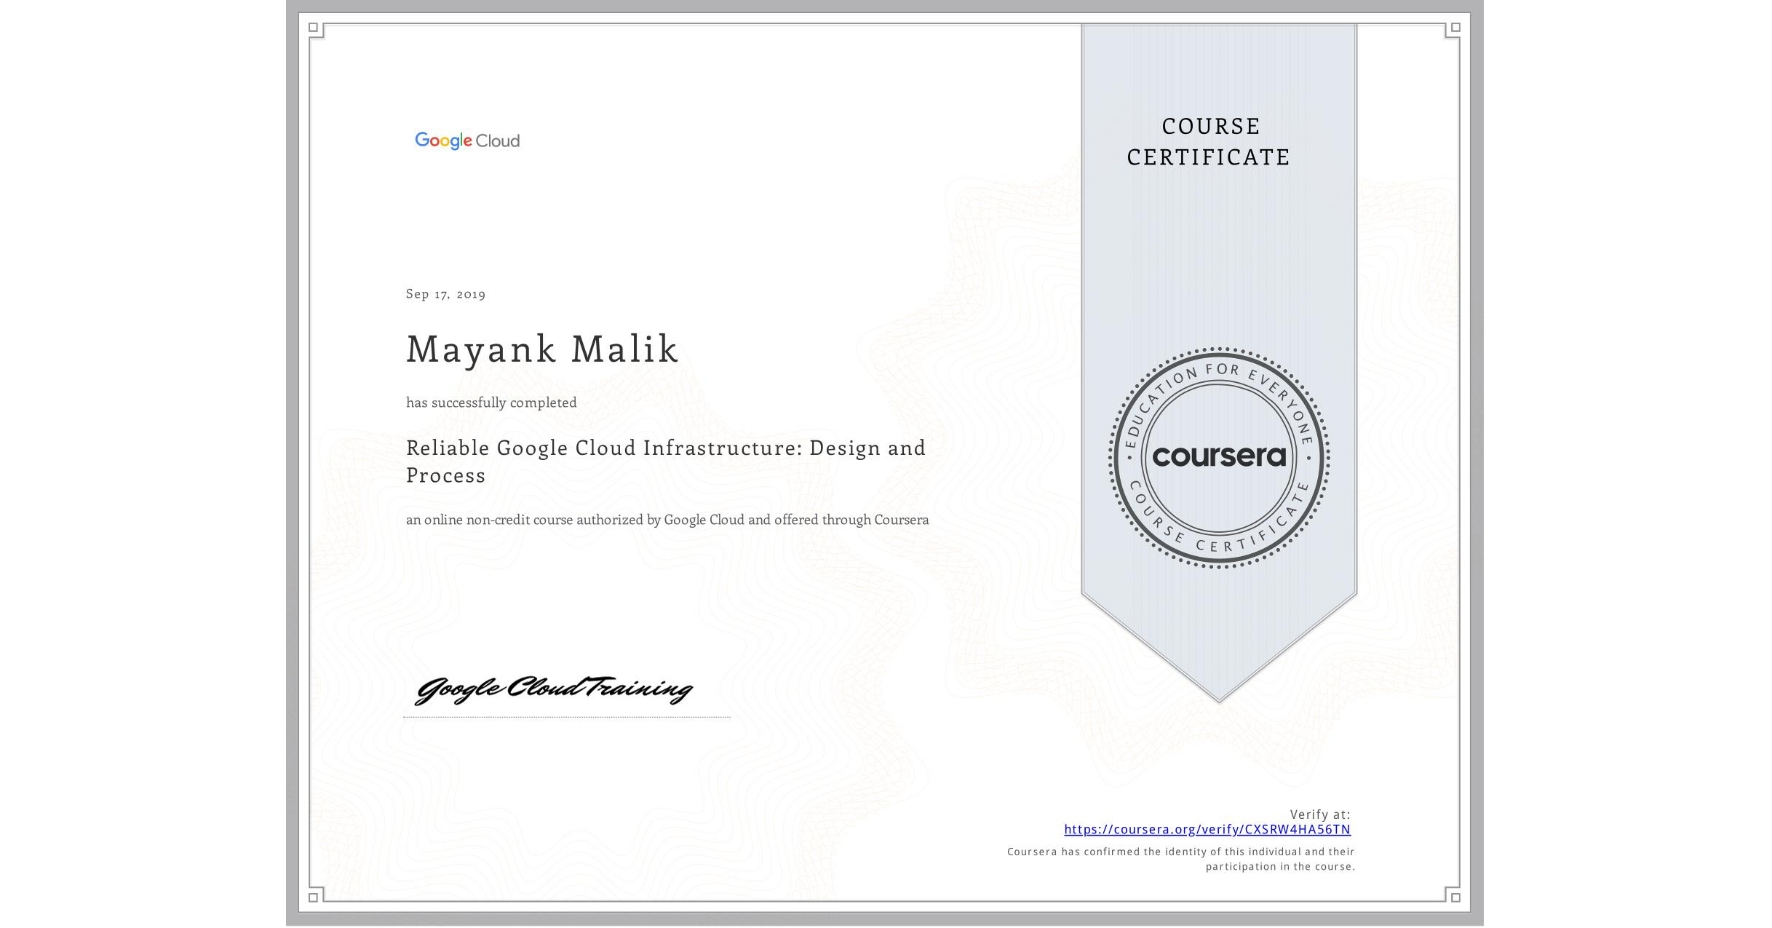 View certificate for Mayank Malik, Reliable Google Cloud Infrastructure: Design and Process, an online non-credit course authorized by Google Cloud and offered through Coursera